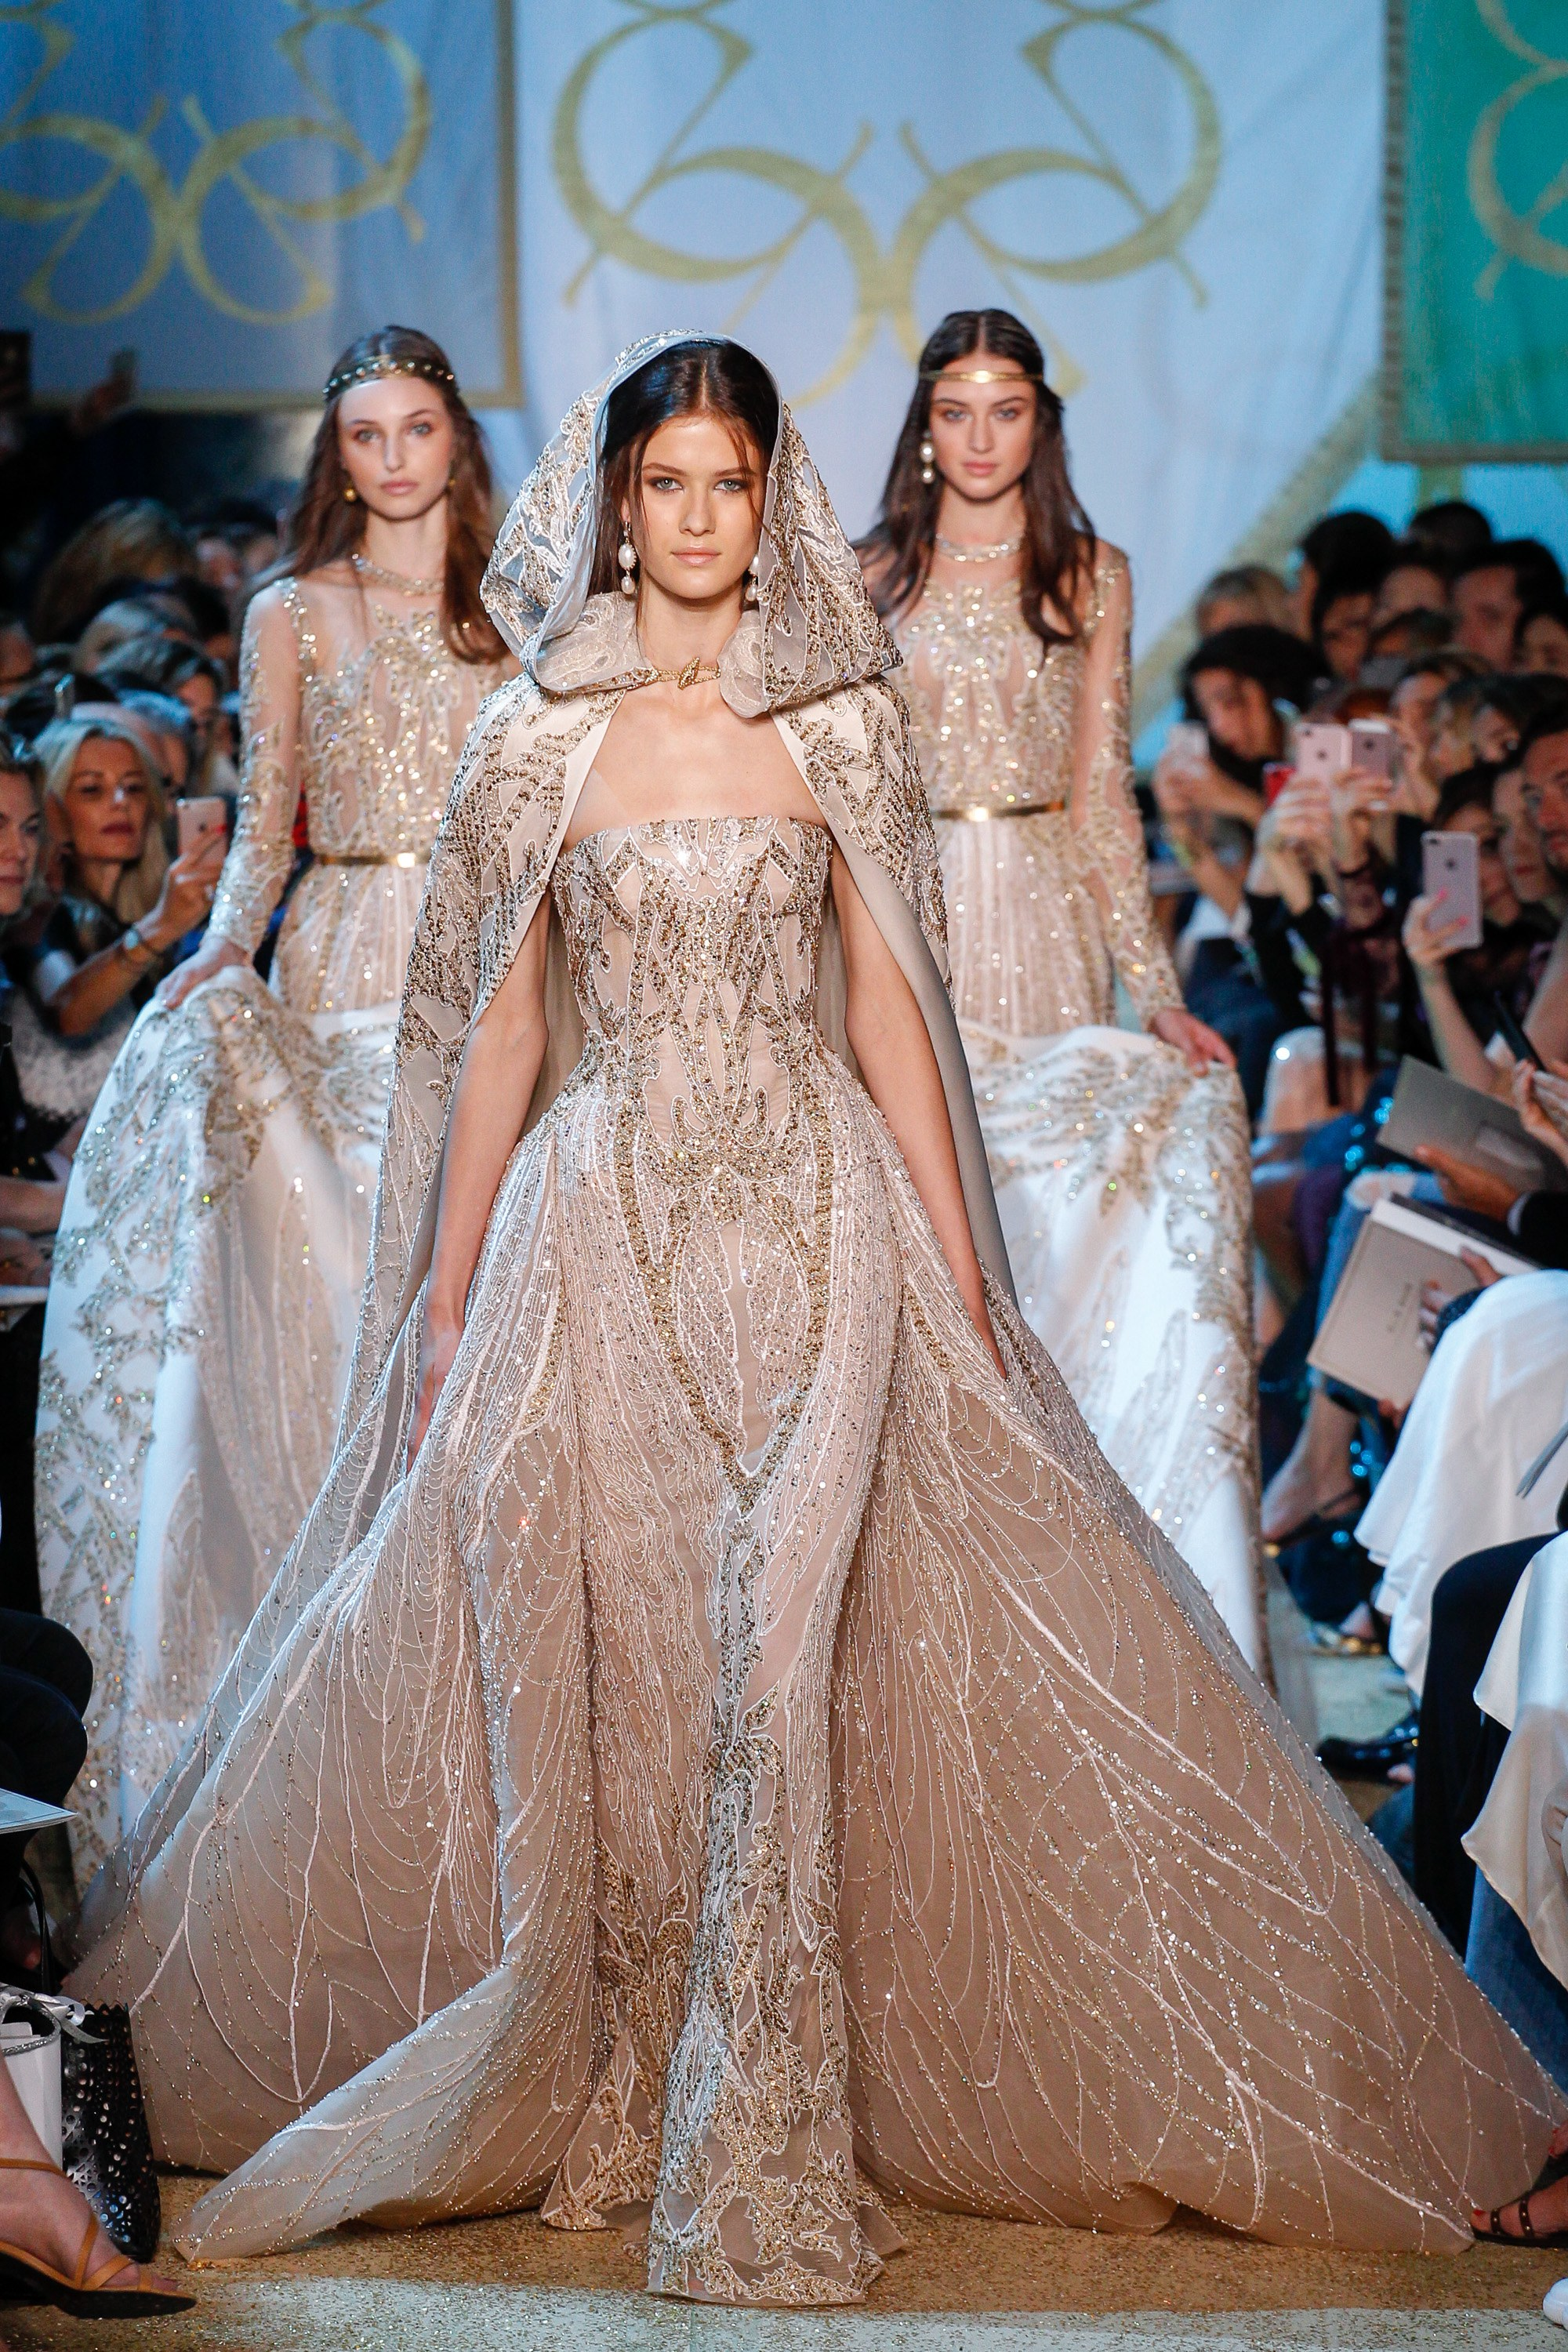 The Best Wedding Dresses From Paris Haute Couture Fashion ...